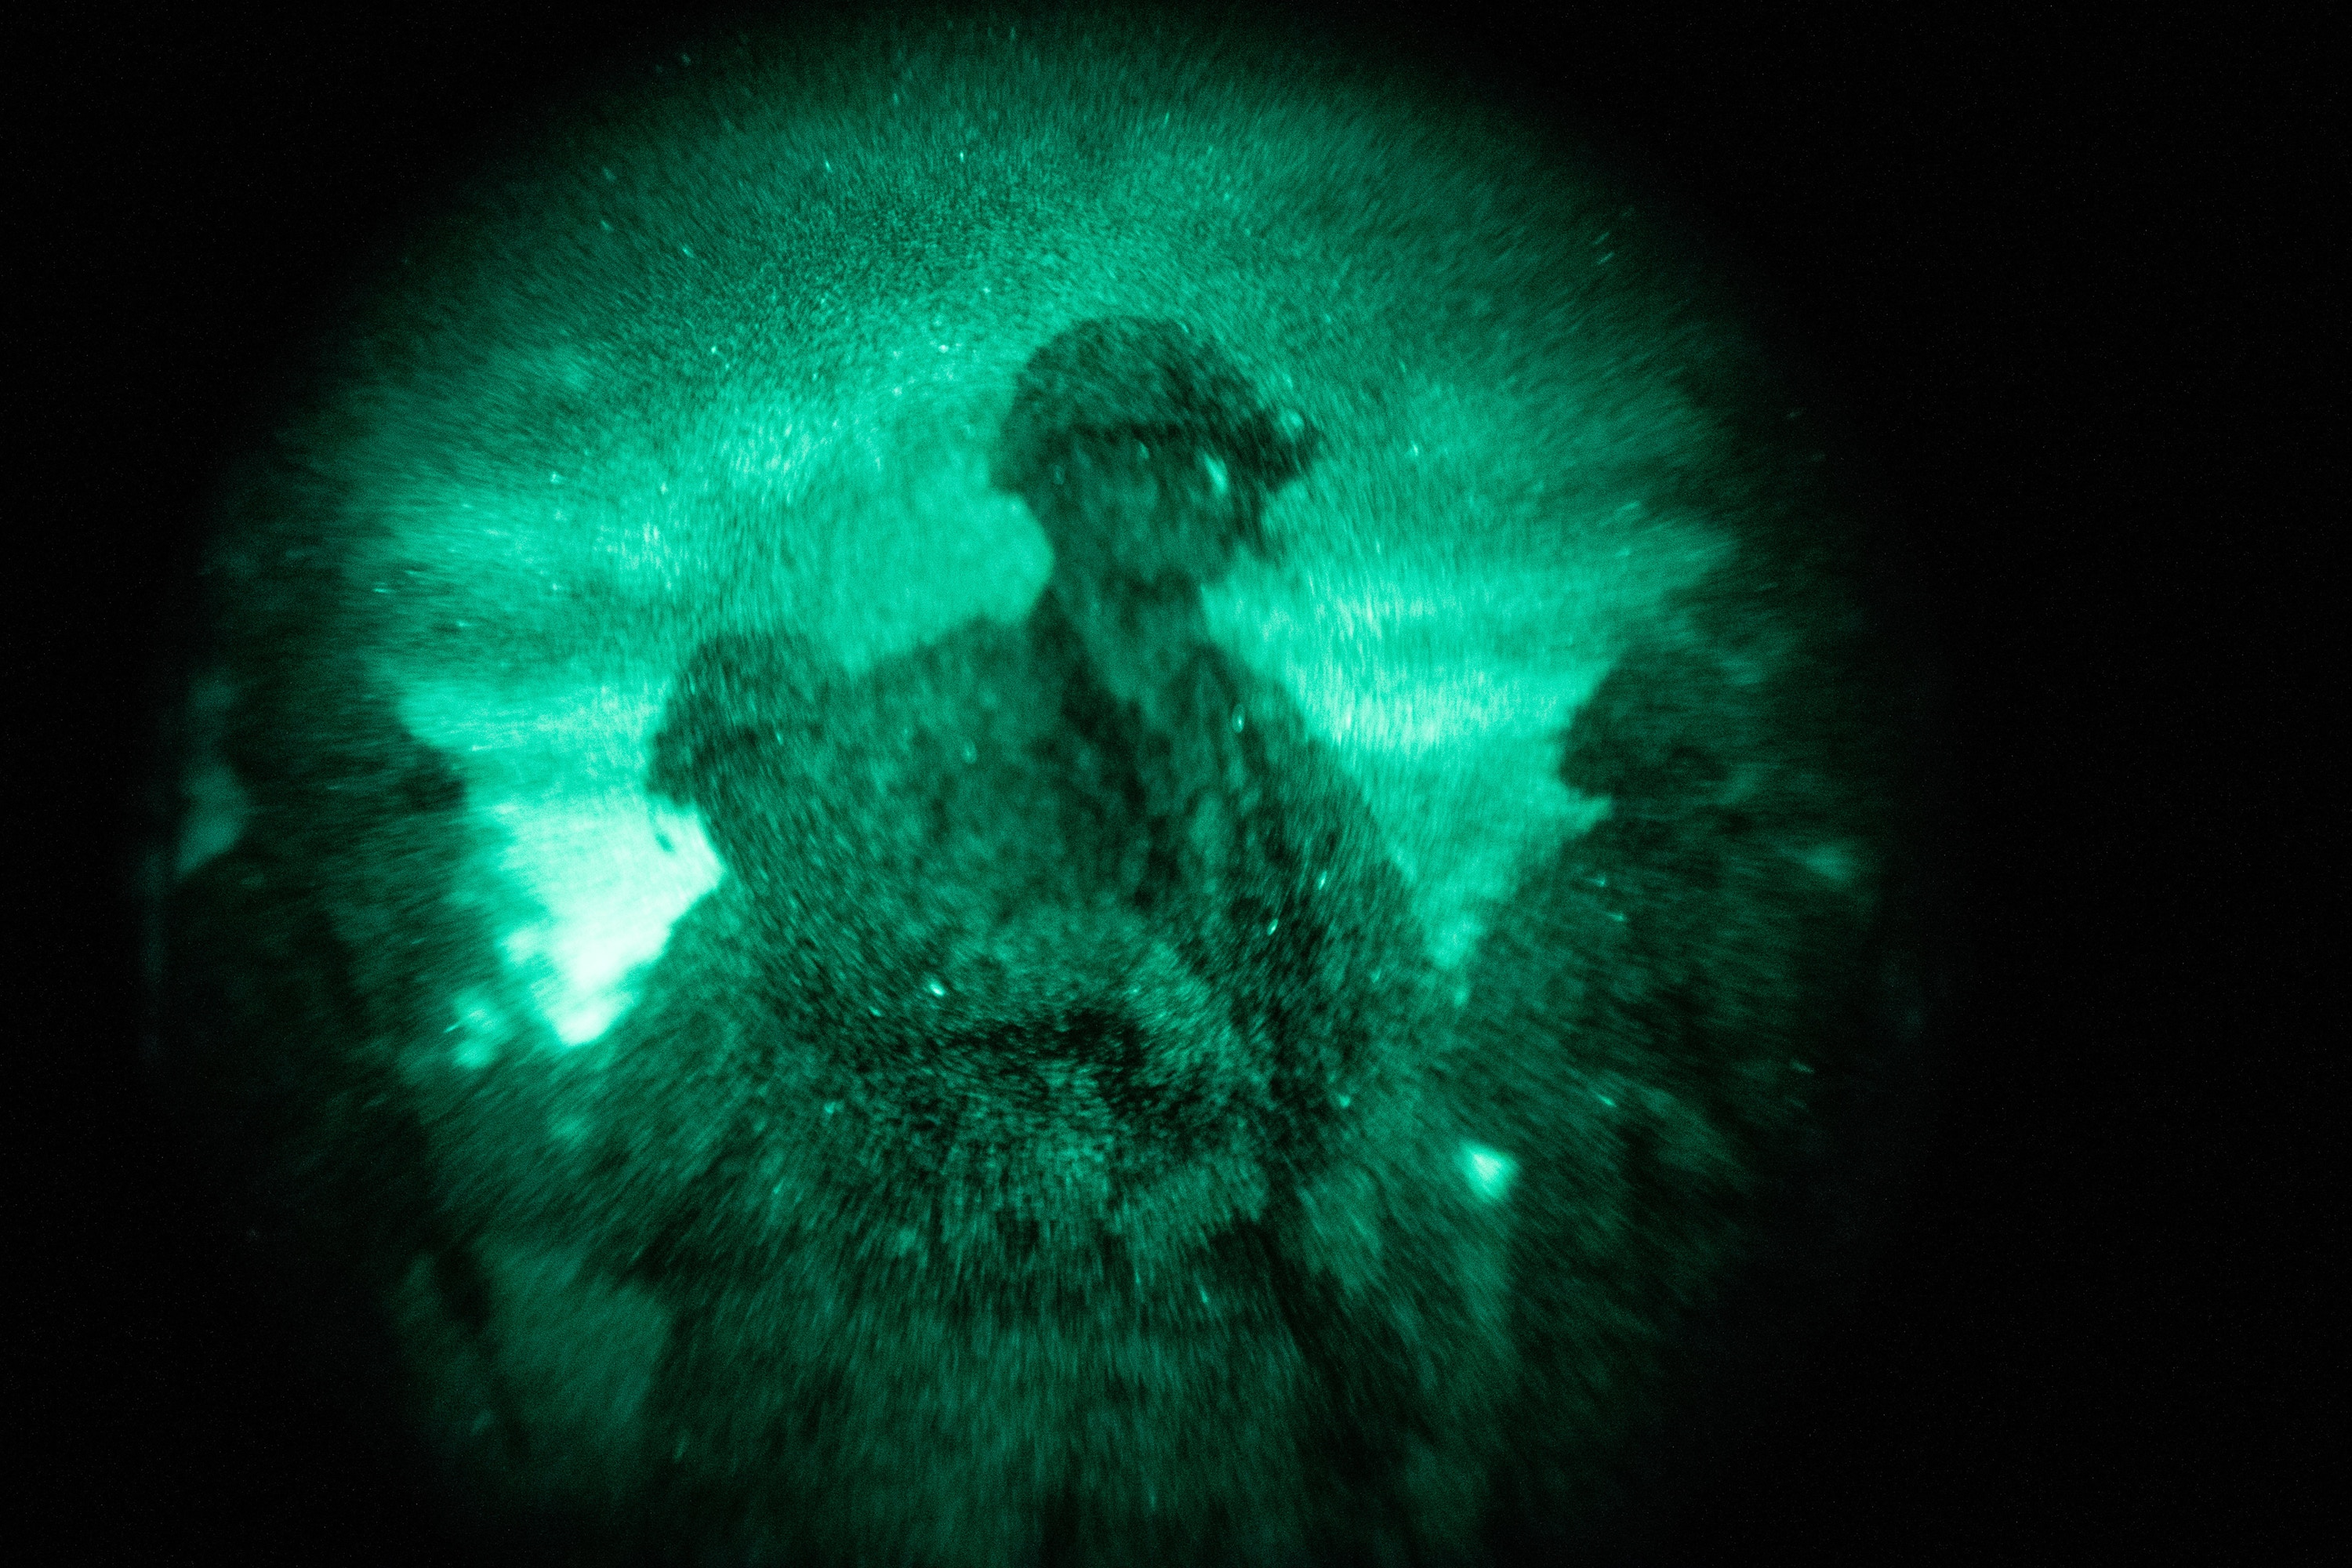 Marines attending the Special Operations Forces Fundamentals course, Marine Raider Training Center, execute a night ambush while patrolling at Marine Corps Base Camp Lejeune, N.C., Dec. 11, 2020. SOF Fundamentals is designed to equip high-performing Marines with additional skills and concepts required to be effective in special operations and provide combat support expertise in intelligence, fire support, communications, explosive ordinance disposal and canine operations as part of a Marine Special Operations Team. (U.S. Marine Corps photo by Cpl. Brennan Priest)